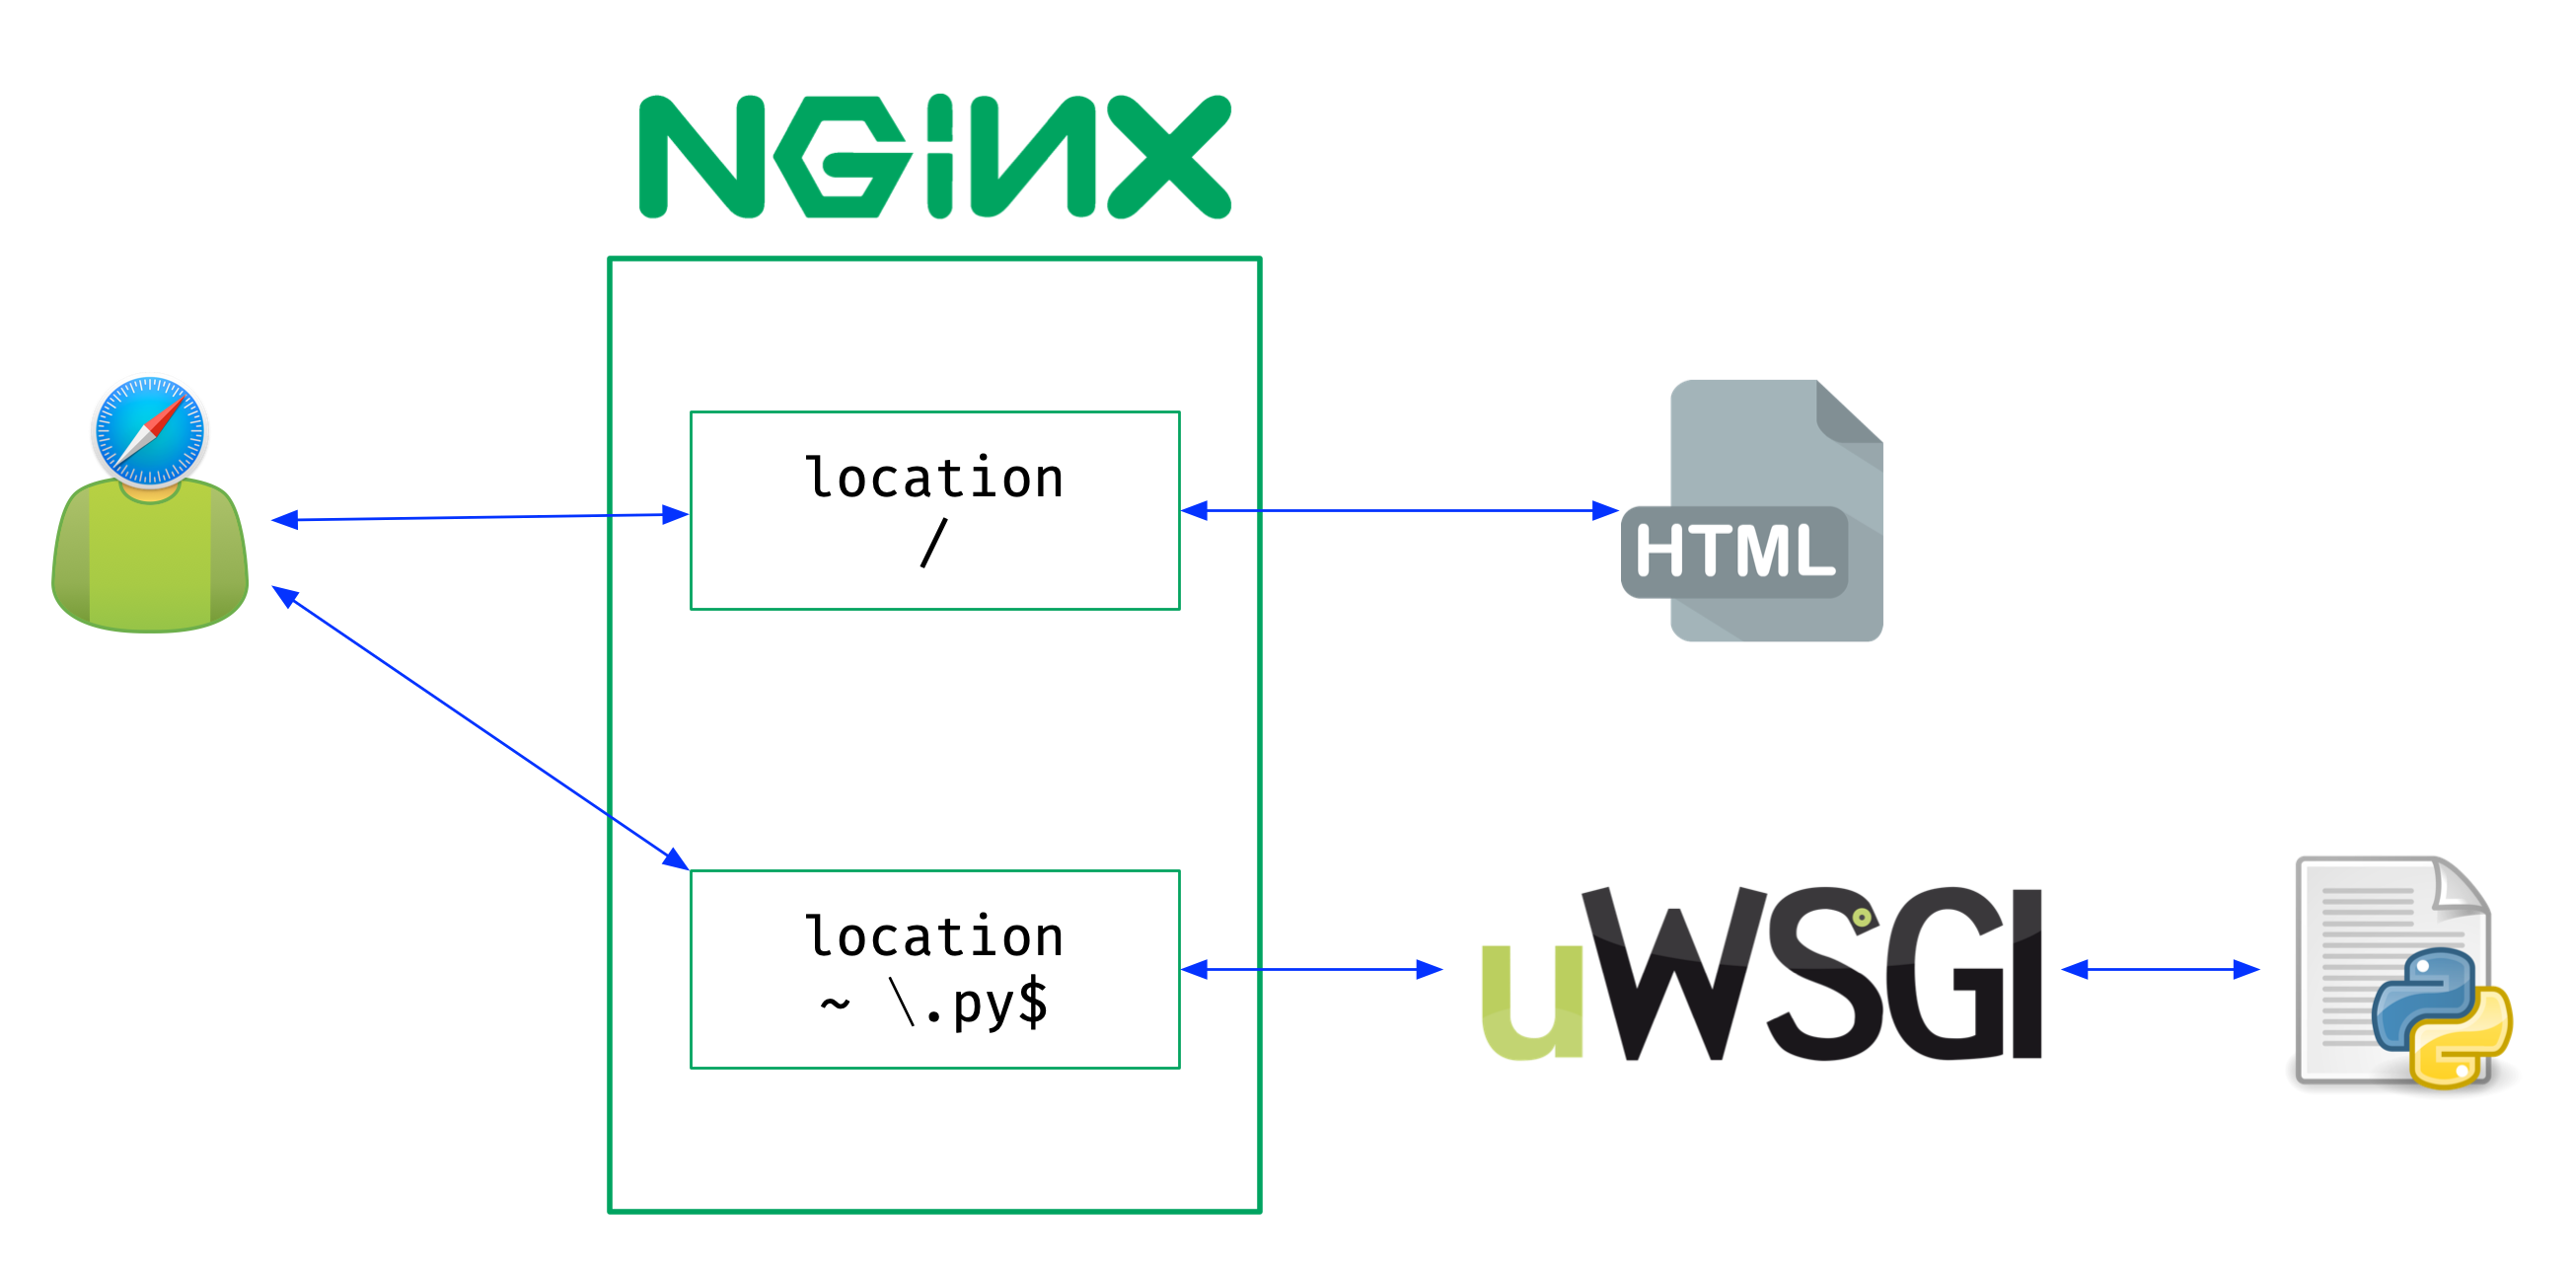 NGINX and uWSGI